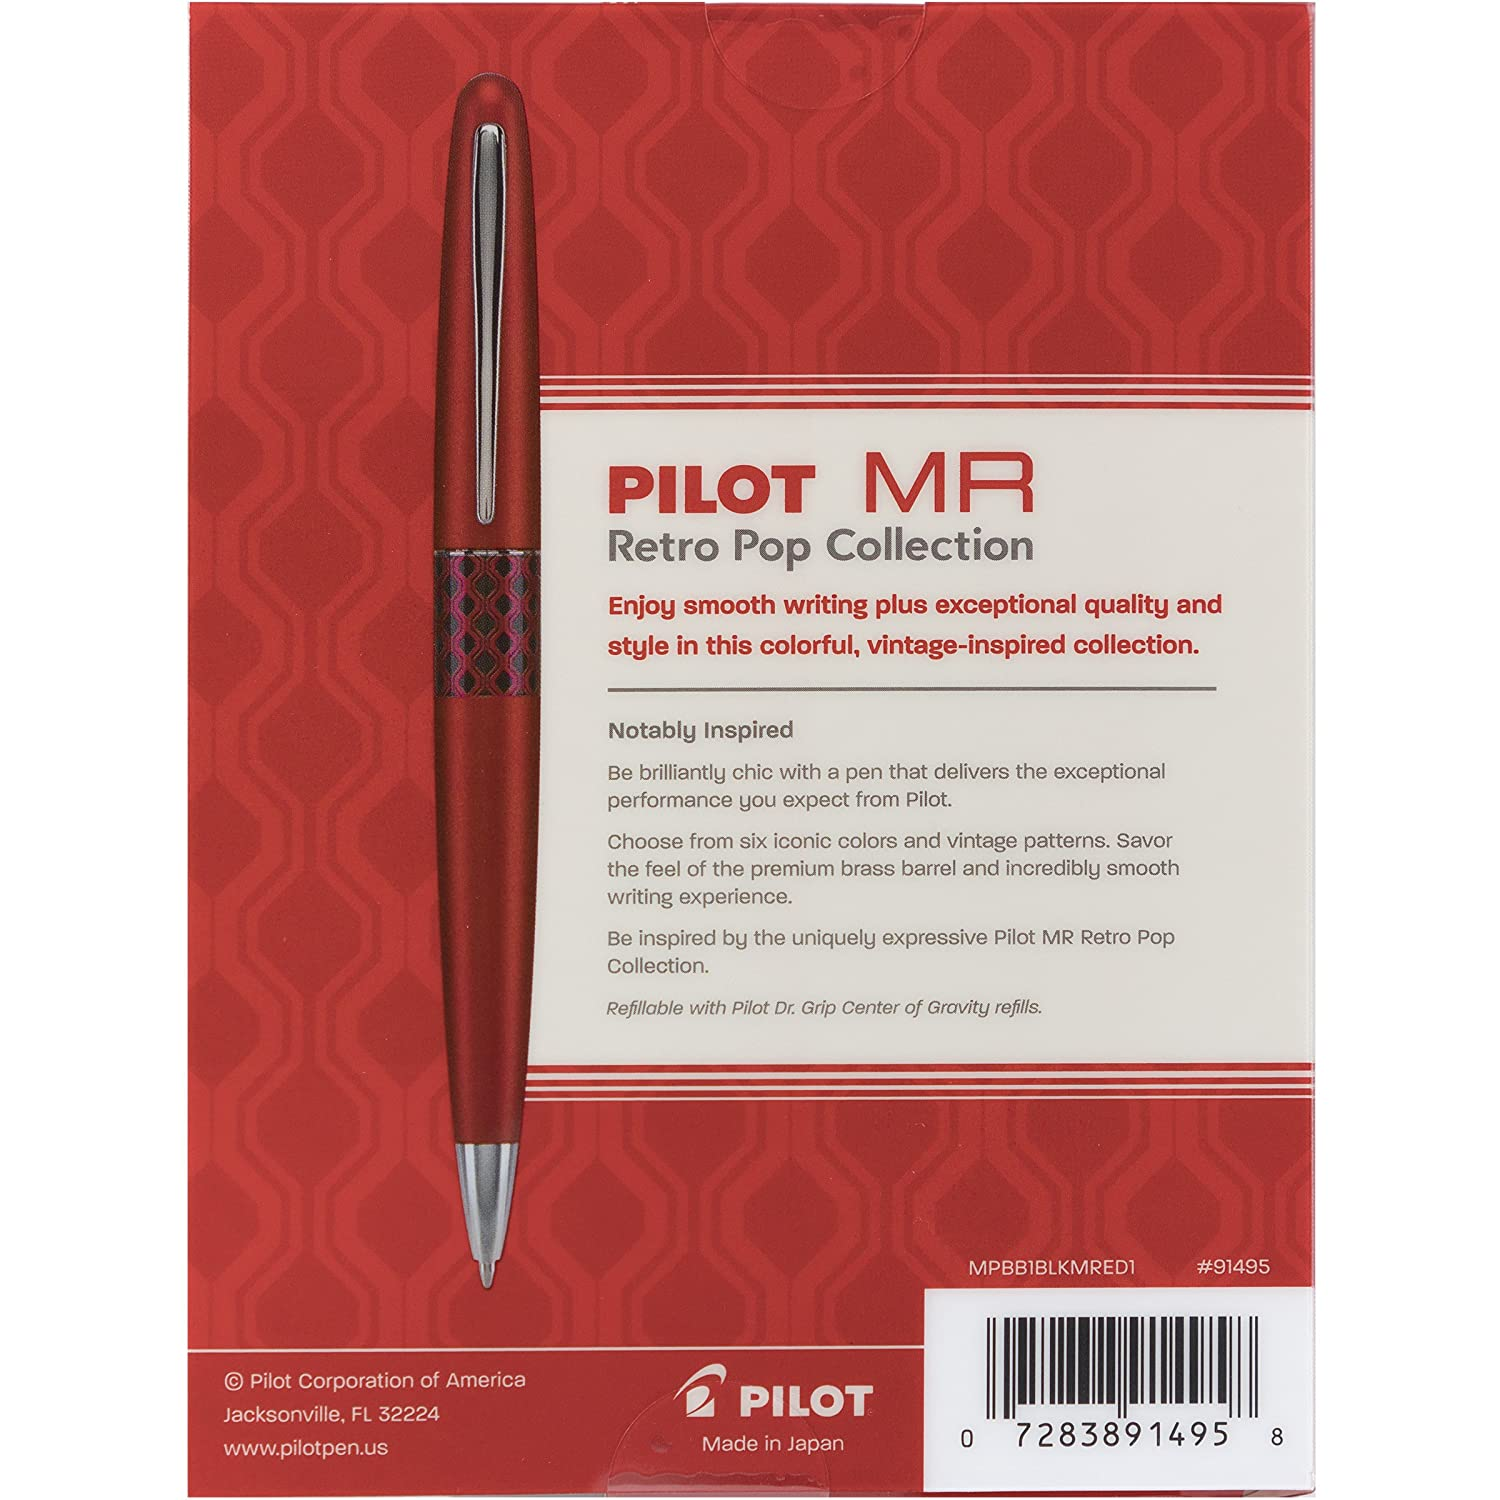 91490 Fine Point Nib Stainless Steel Nib Refillable Modern Design Fountain Pen with Retro Patterns Marigold with Flower Accent Pilot MR Retro Pop Collection Fountain Pen Gift Box with 2 Refills